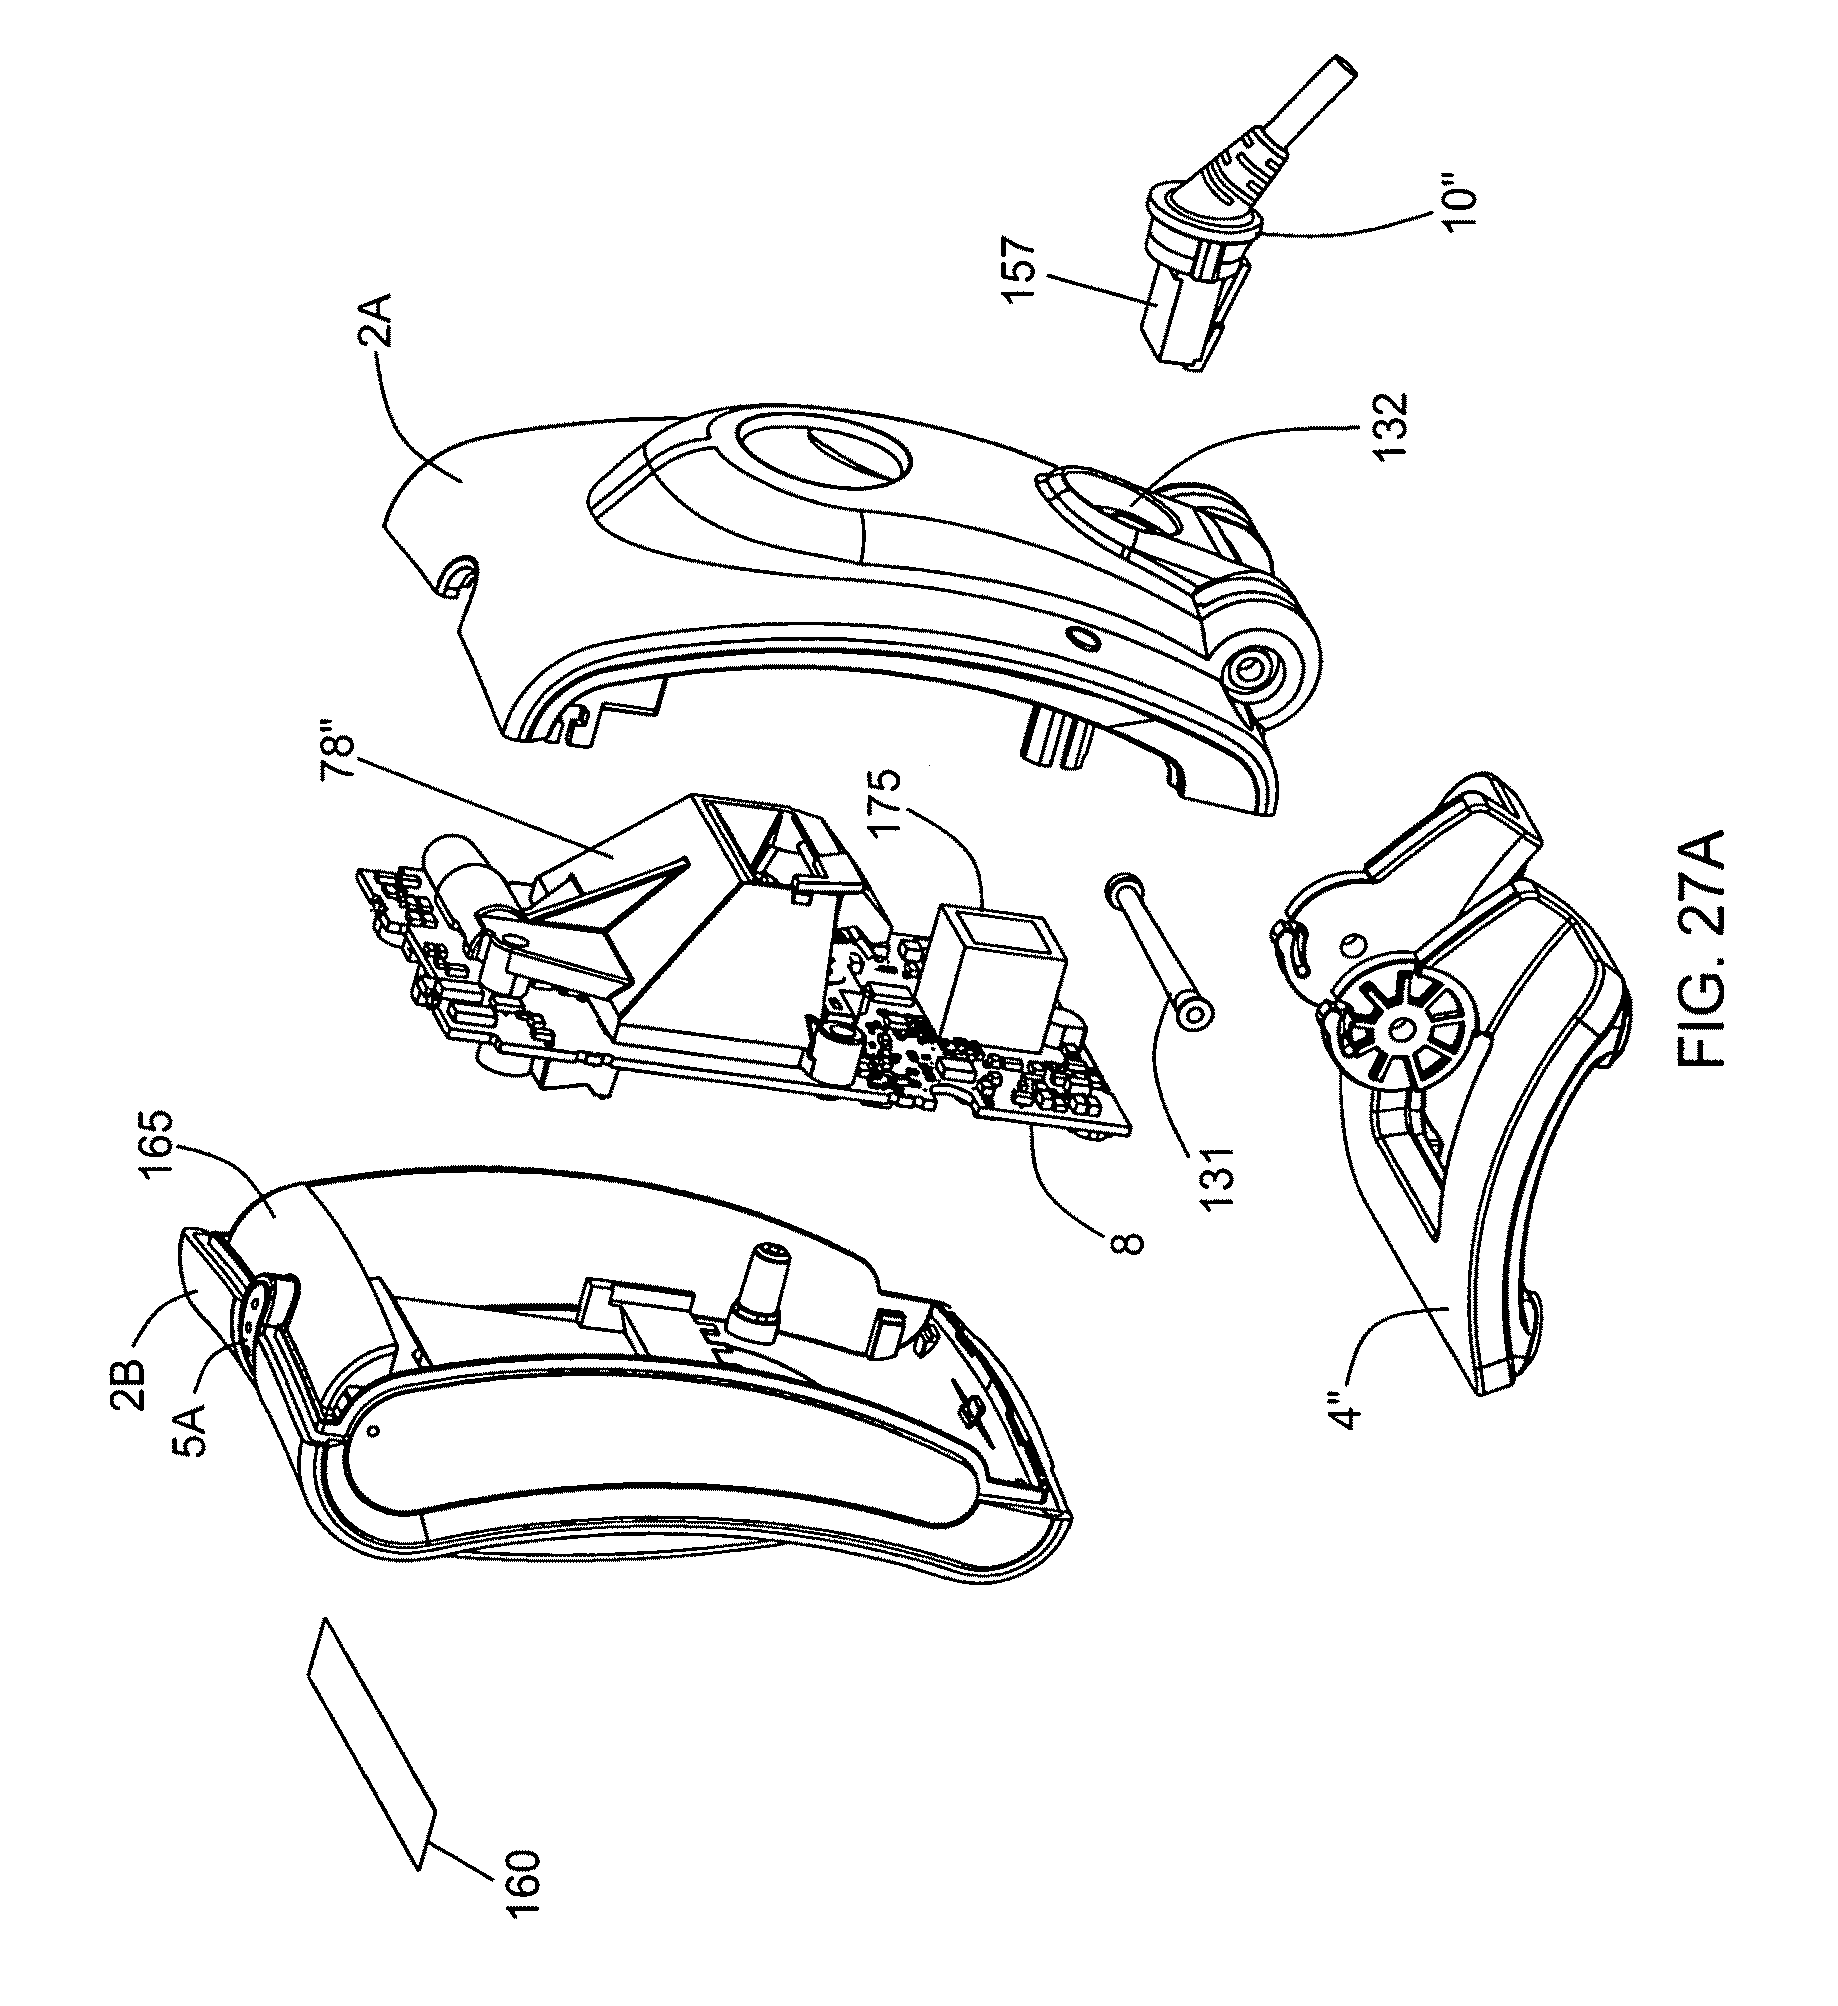 Patent Us 7967209 B2 Charging Circuit Diagram For The 1948 50 Packard Auto Lite Equipment Images